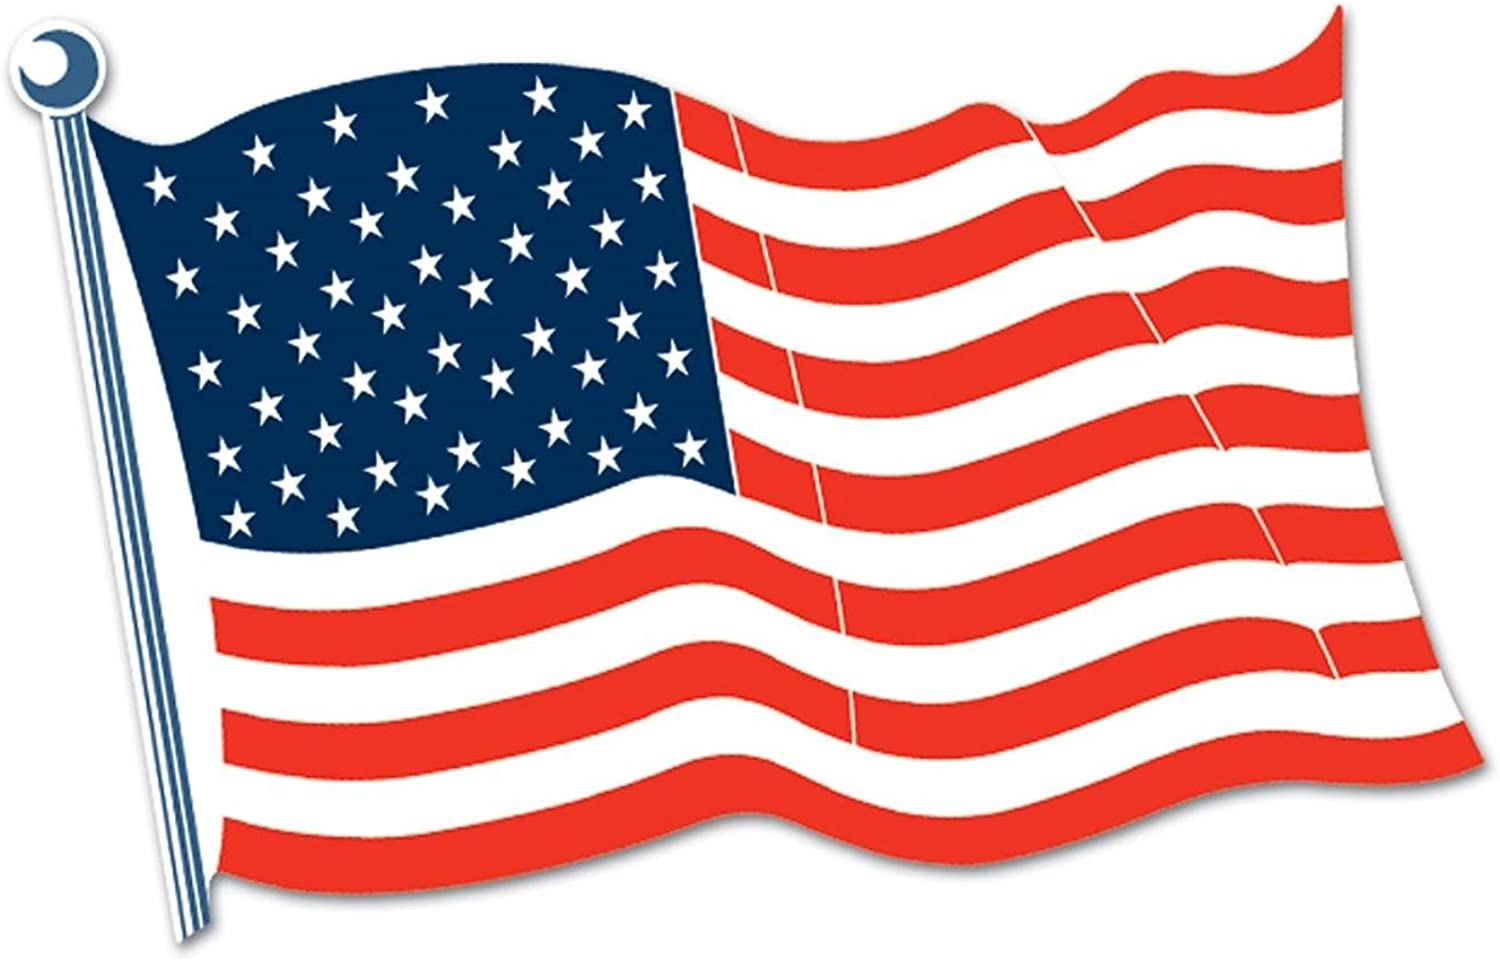 Club Pack of 24 Patriotic Red, White and bluee American Flag Cutout Decorations 24